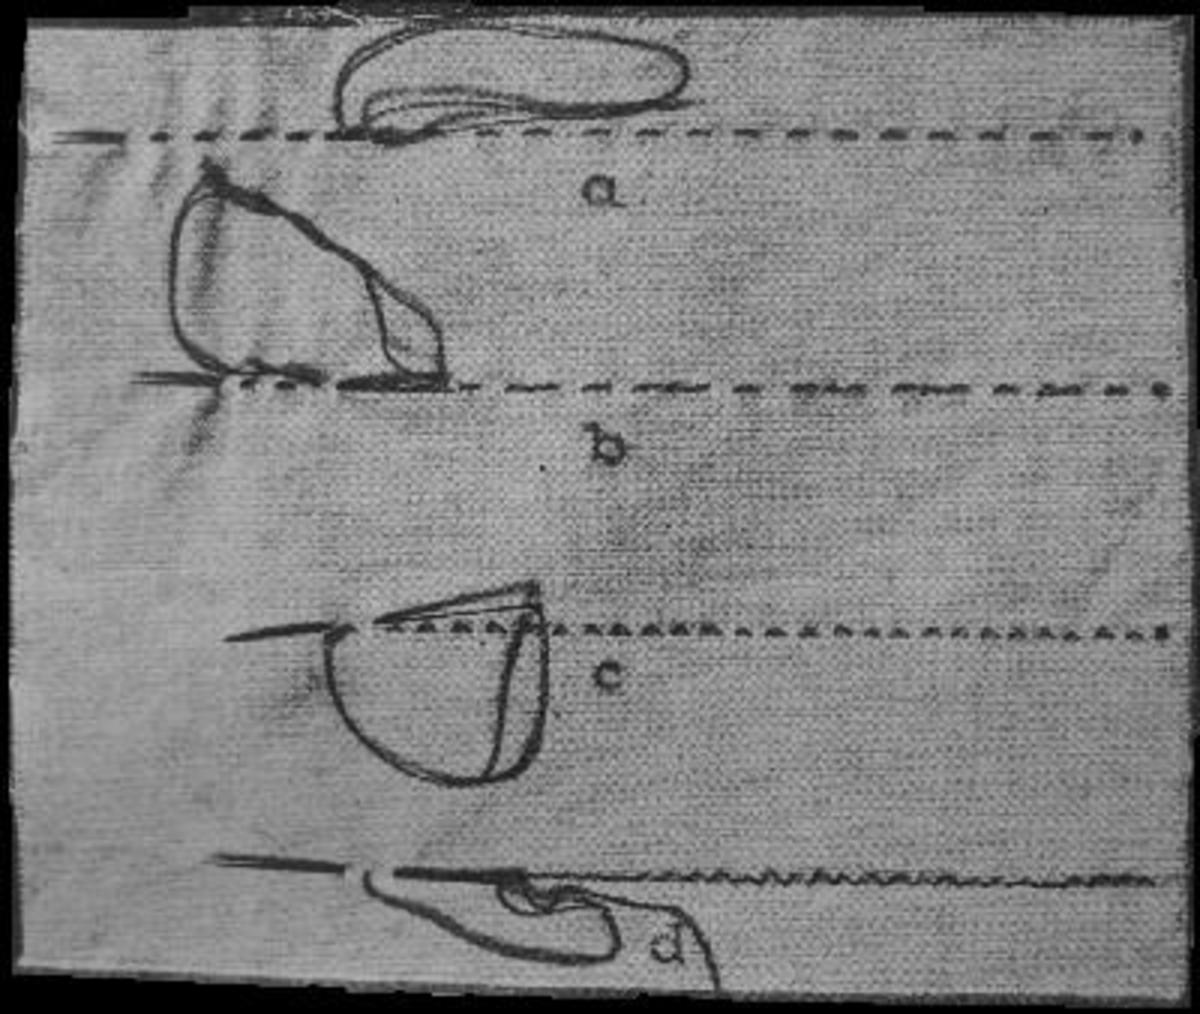 Types of Stitches used in Hand Sewing - Kinds of Plain Stitch